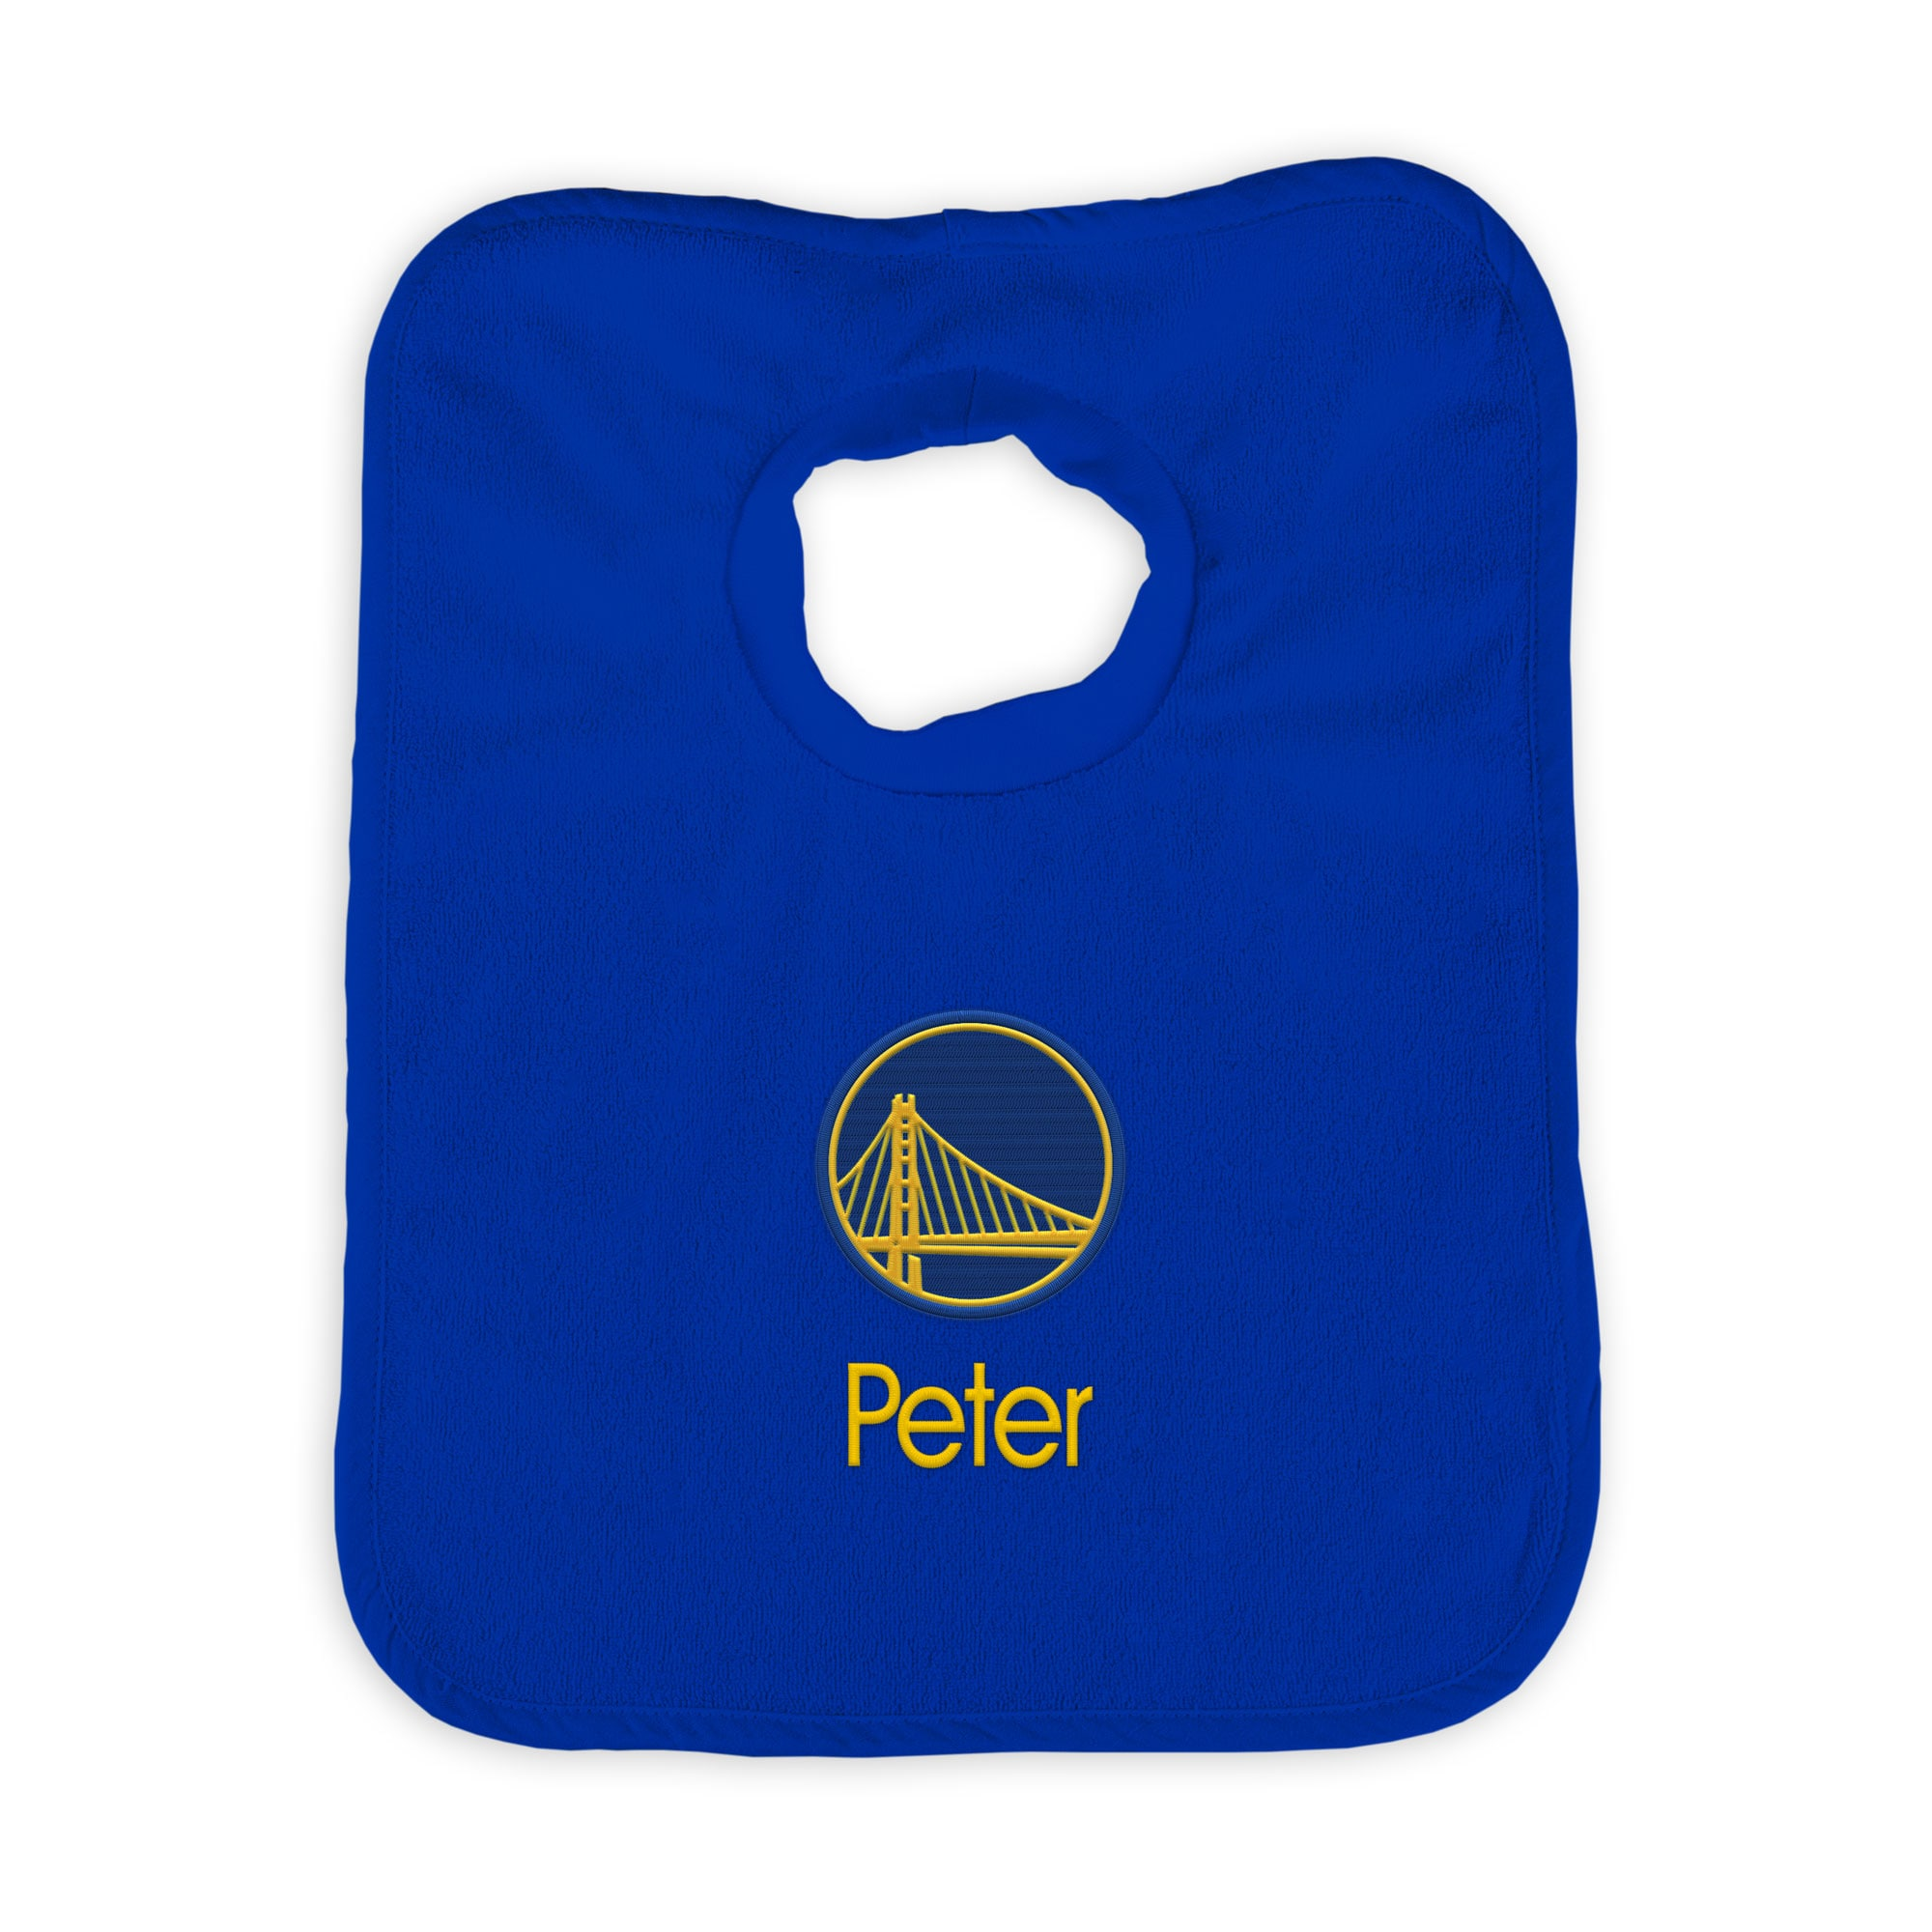 Golden State Warriors Newborn & Infant Personalized Bib - White